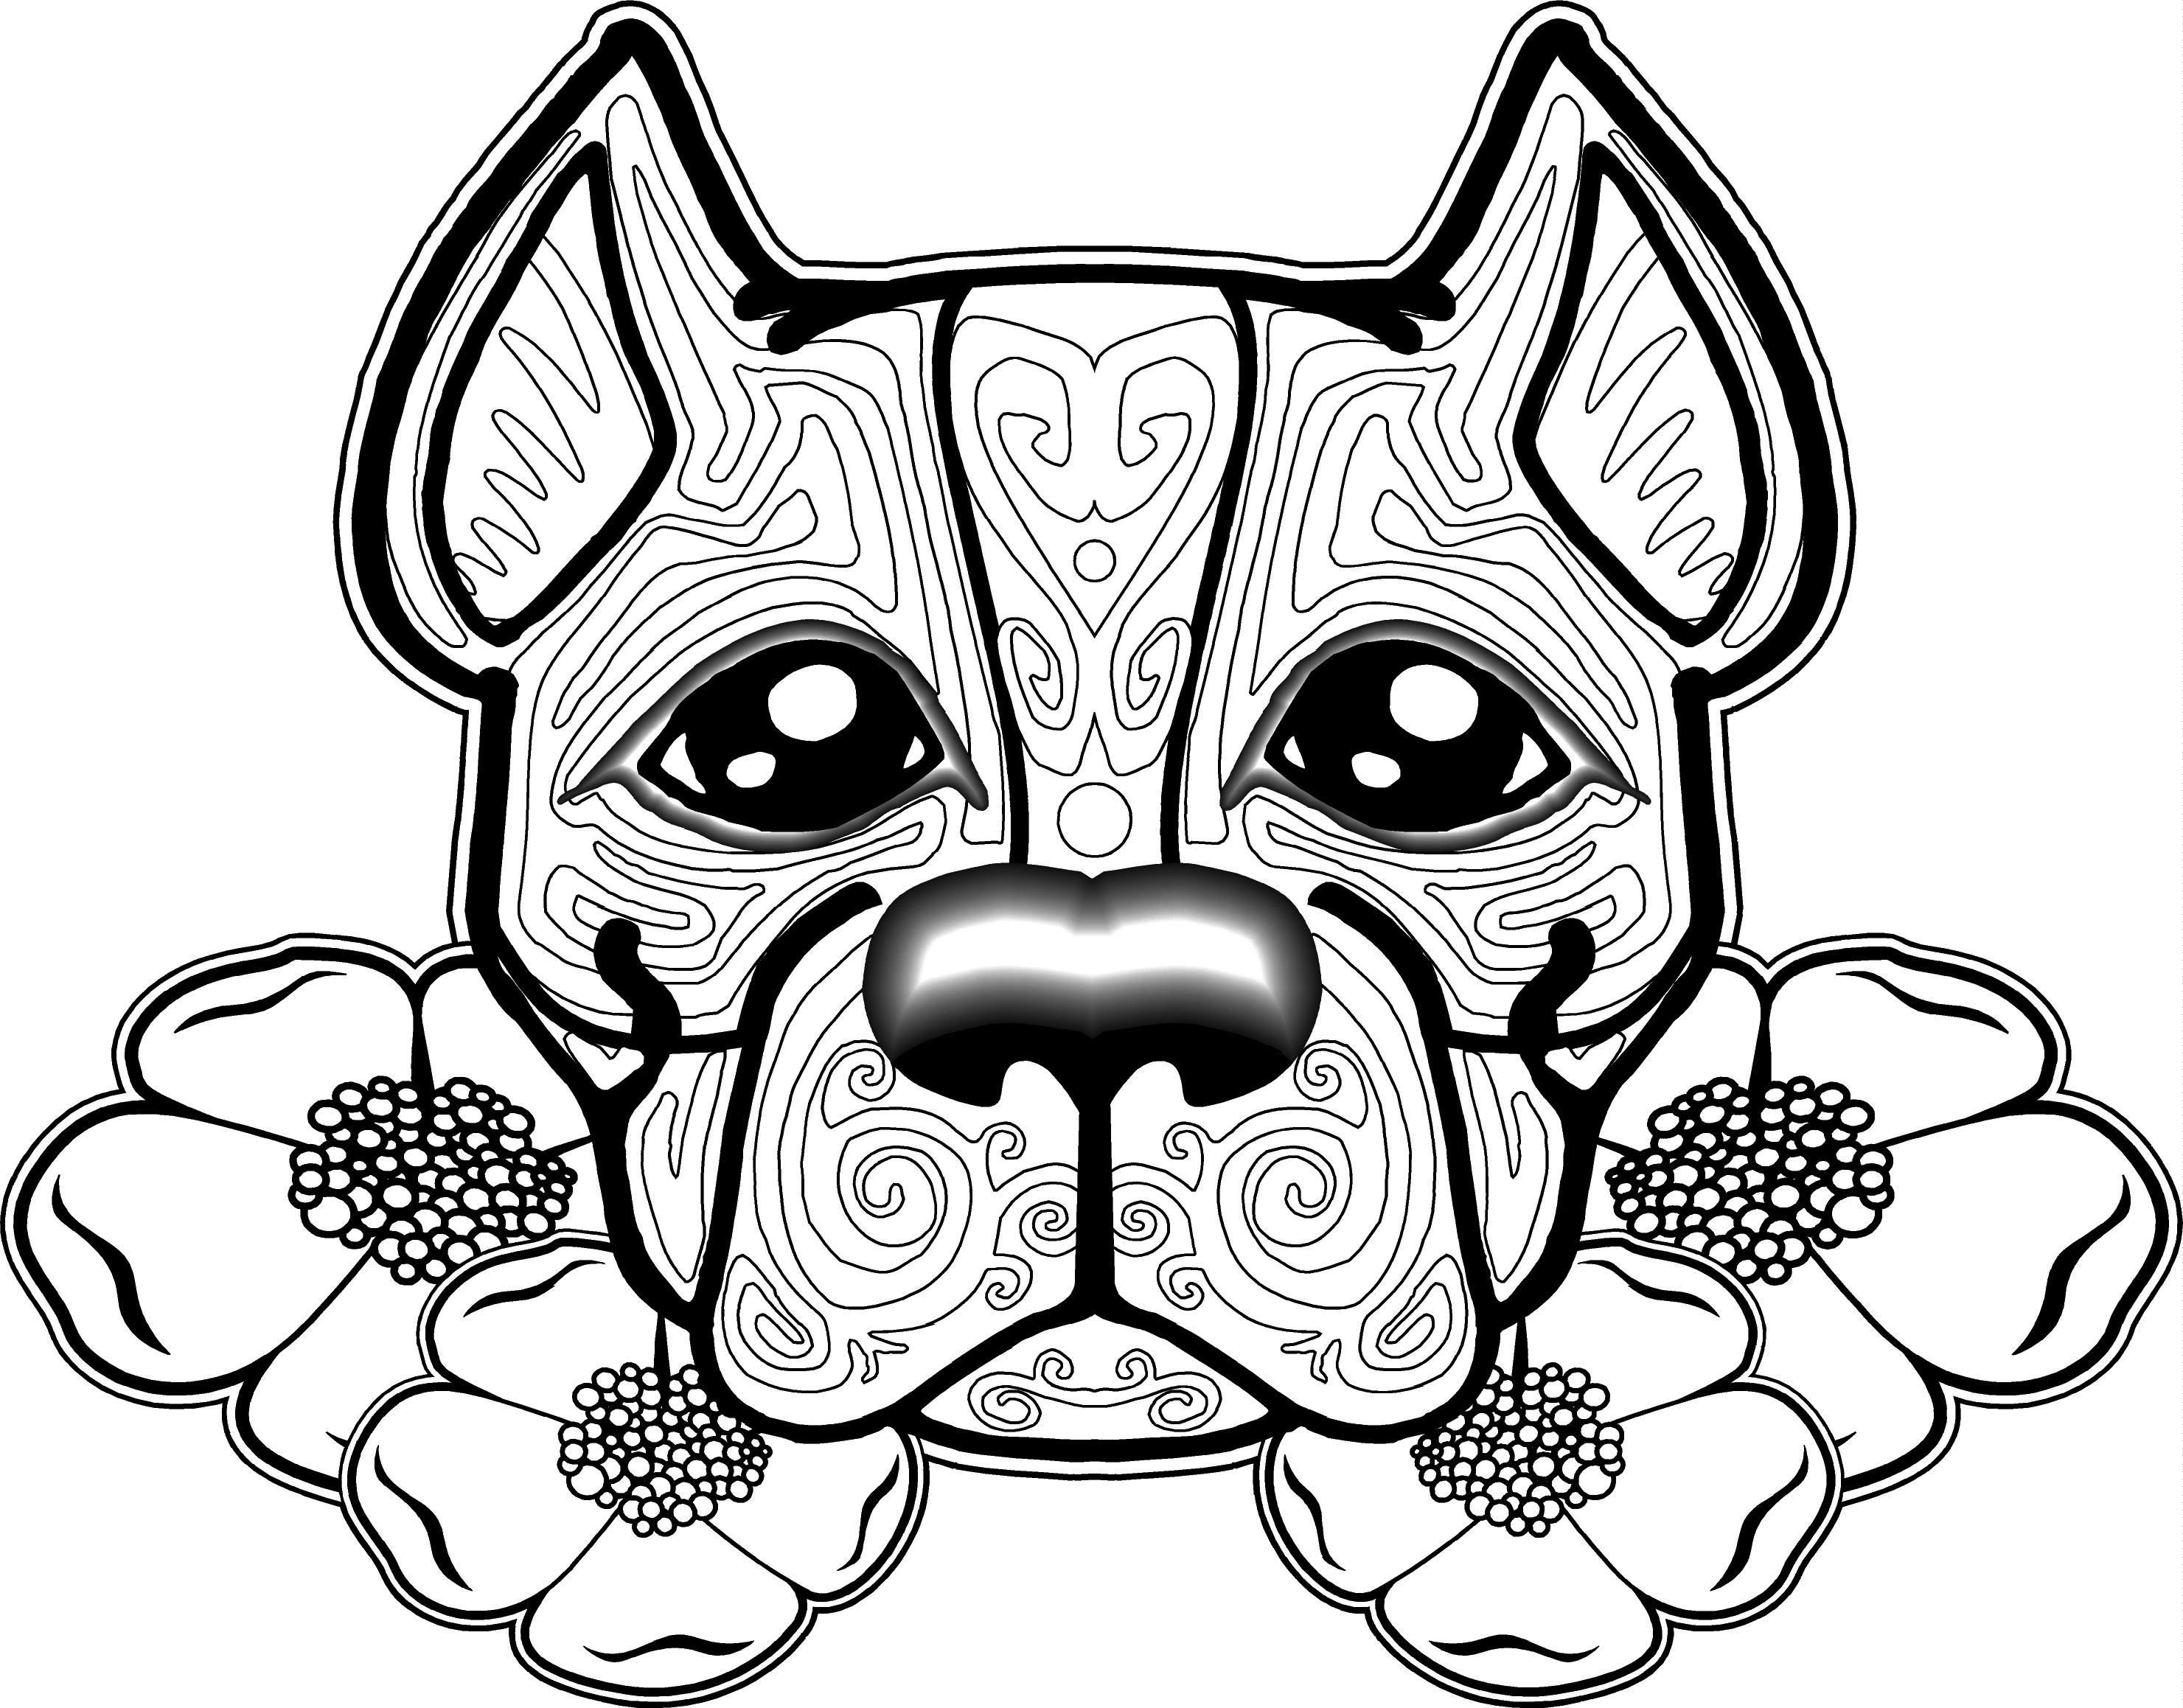 coloring pages for adults dogs dog coloring pages for adults best coloring pages for kids for adults dogs coloring pages